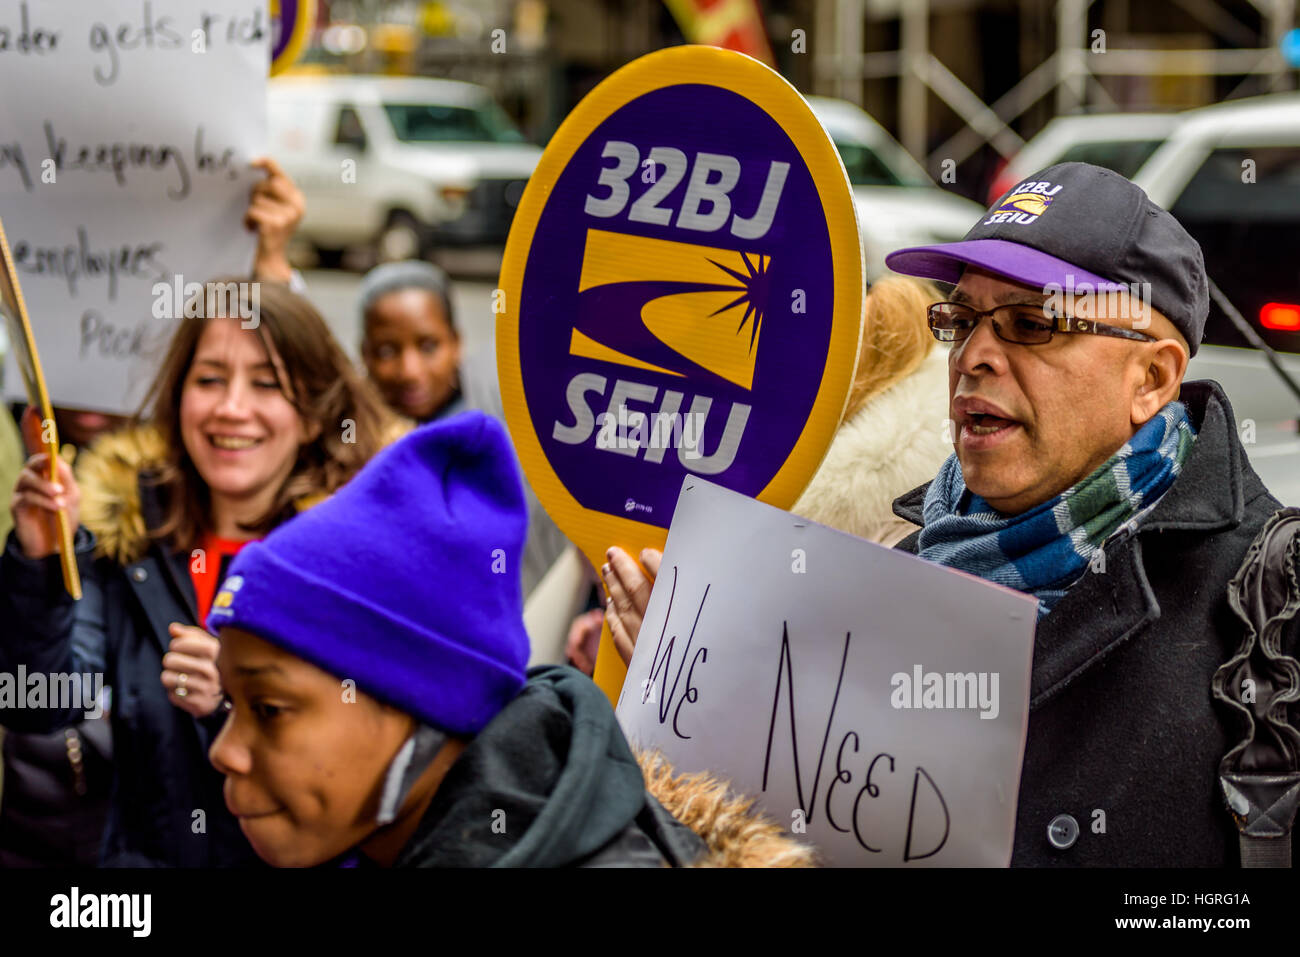 New York, United States. 12th Jan, 2017. On Thursday, January 12, 2017, NYC Fast Food Workers in the Fight for $15; - Stock Image